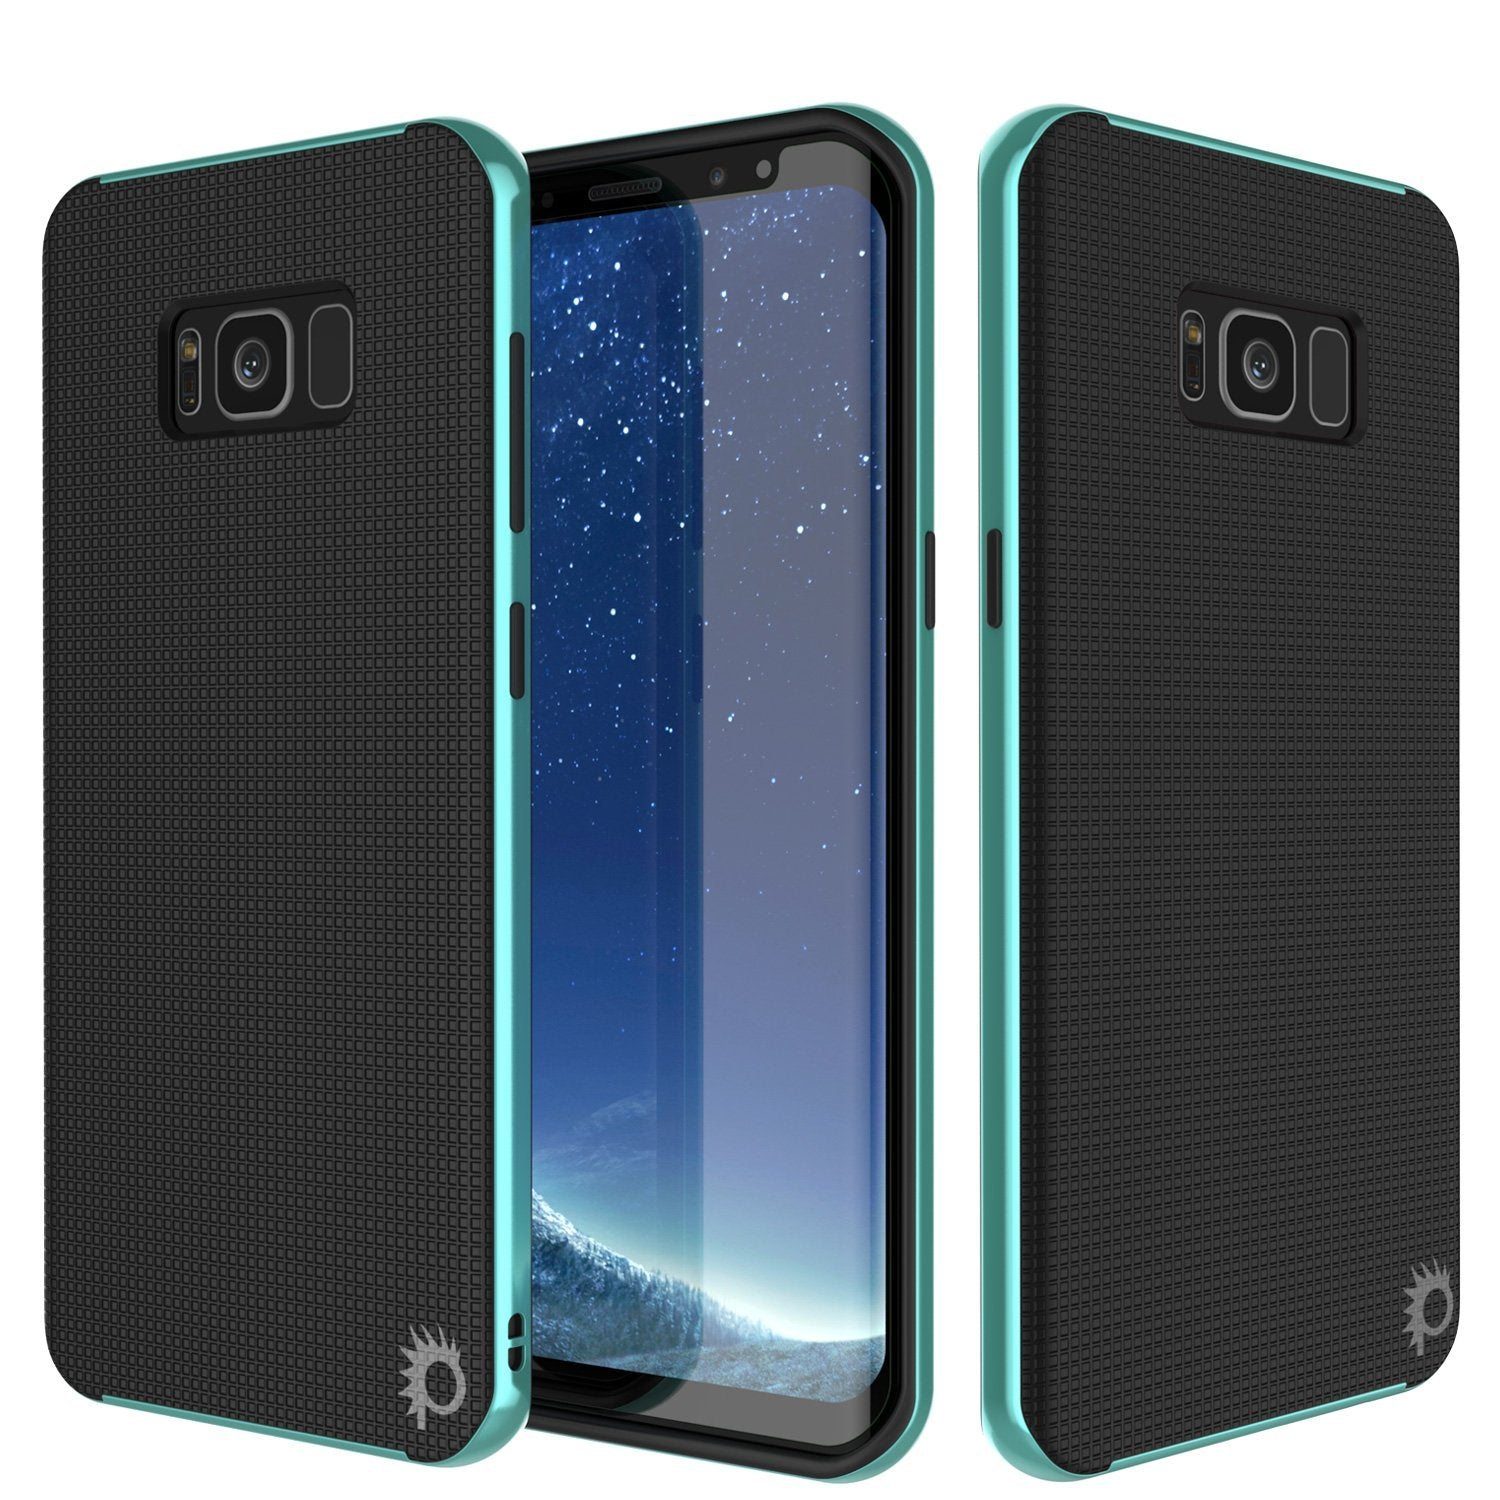 Galaxy S8 Case, PunkCase [Stealth Series] Hybrid 3-Piece Shockproof Dual Layer Cover [Non-Slip] [Soft TPU + PC Bumper] with PUNKSHIELD Screen Protector for Samsung S8 Edge [Teal]